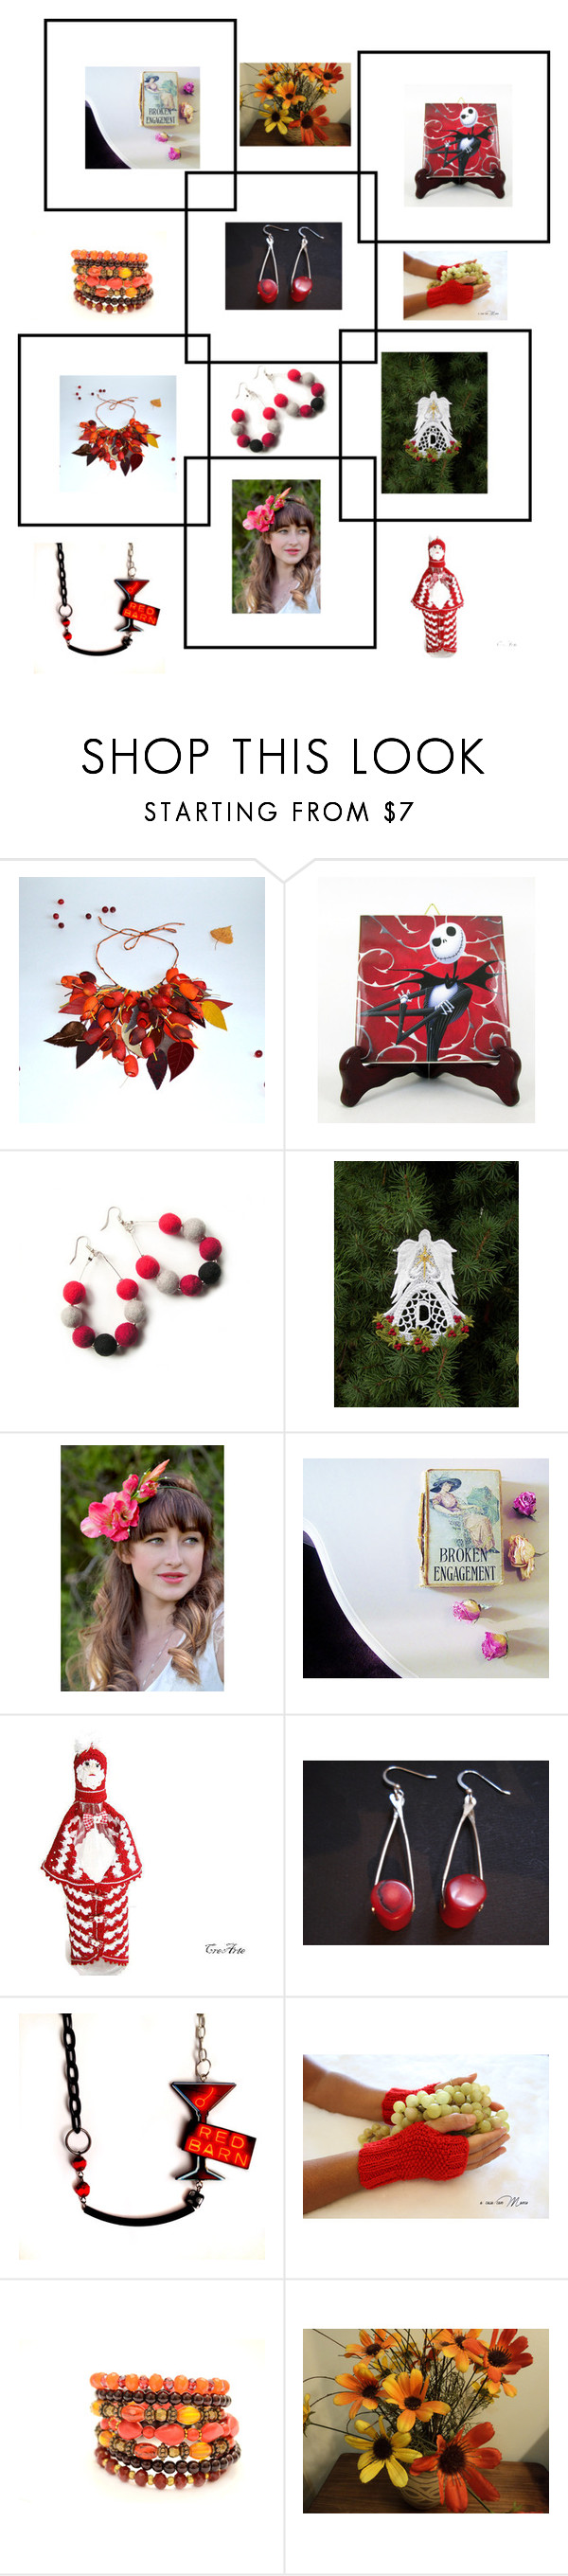 """""""Pretty Gifts"""" by anna-recycle ❤ liked on Polyvore featuring Tecnica"""